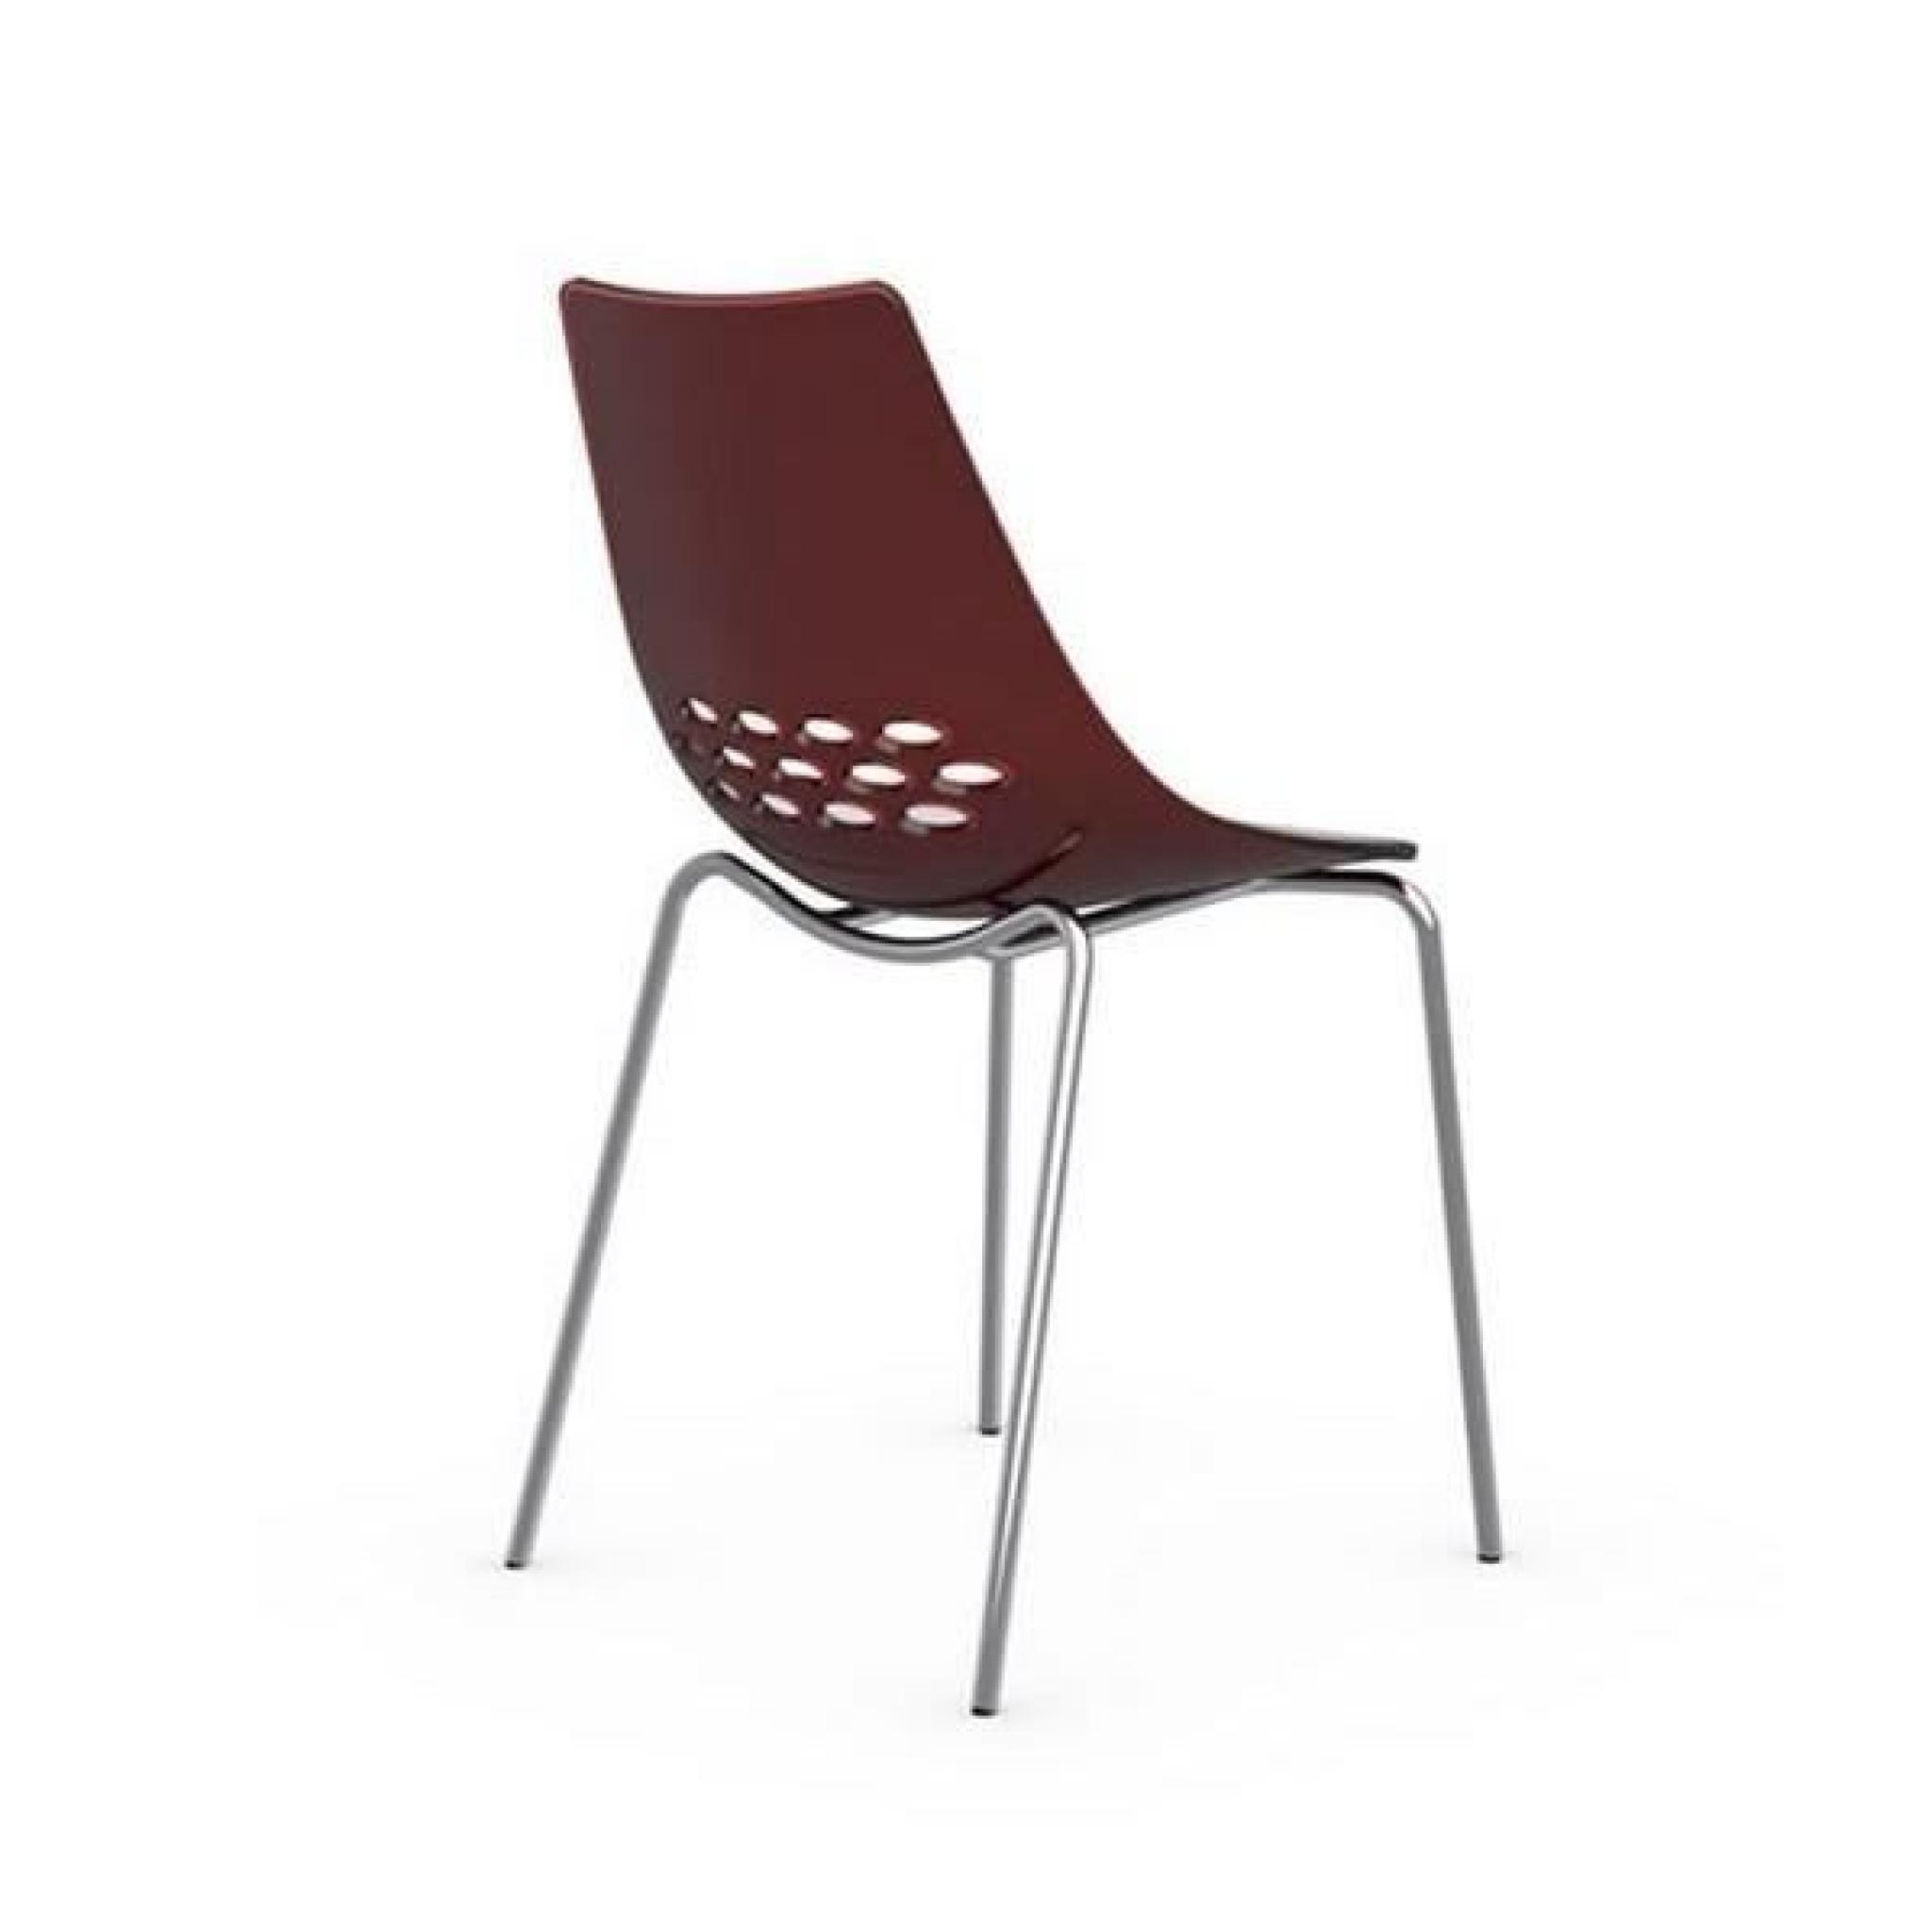 Chaise design jam blanche brillante et rouge transparent de calligaris acha - Chaise rouge pas cher ...